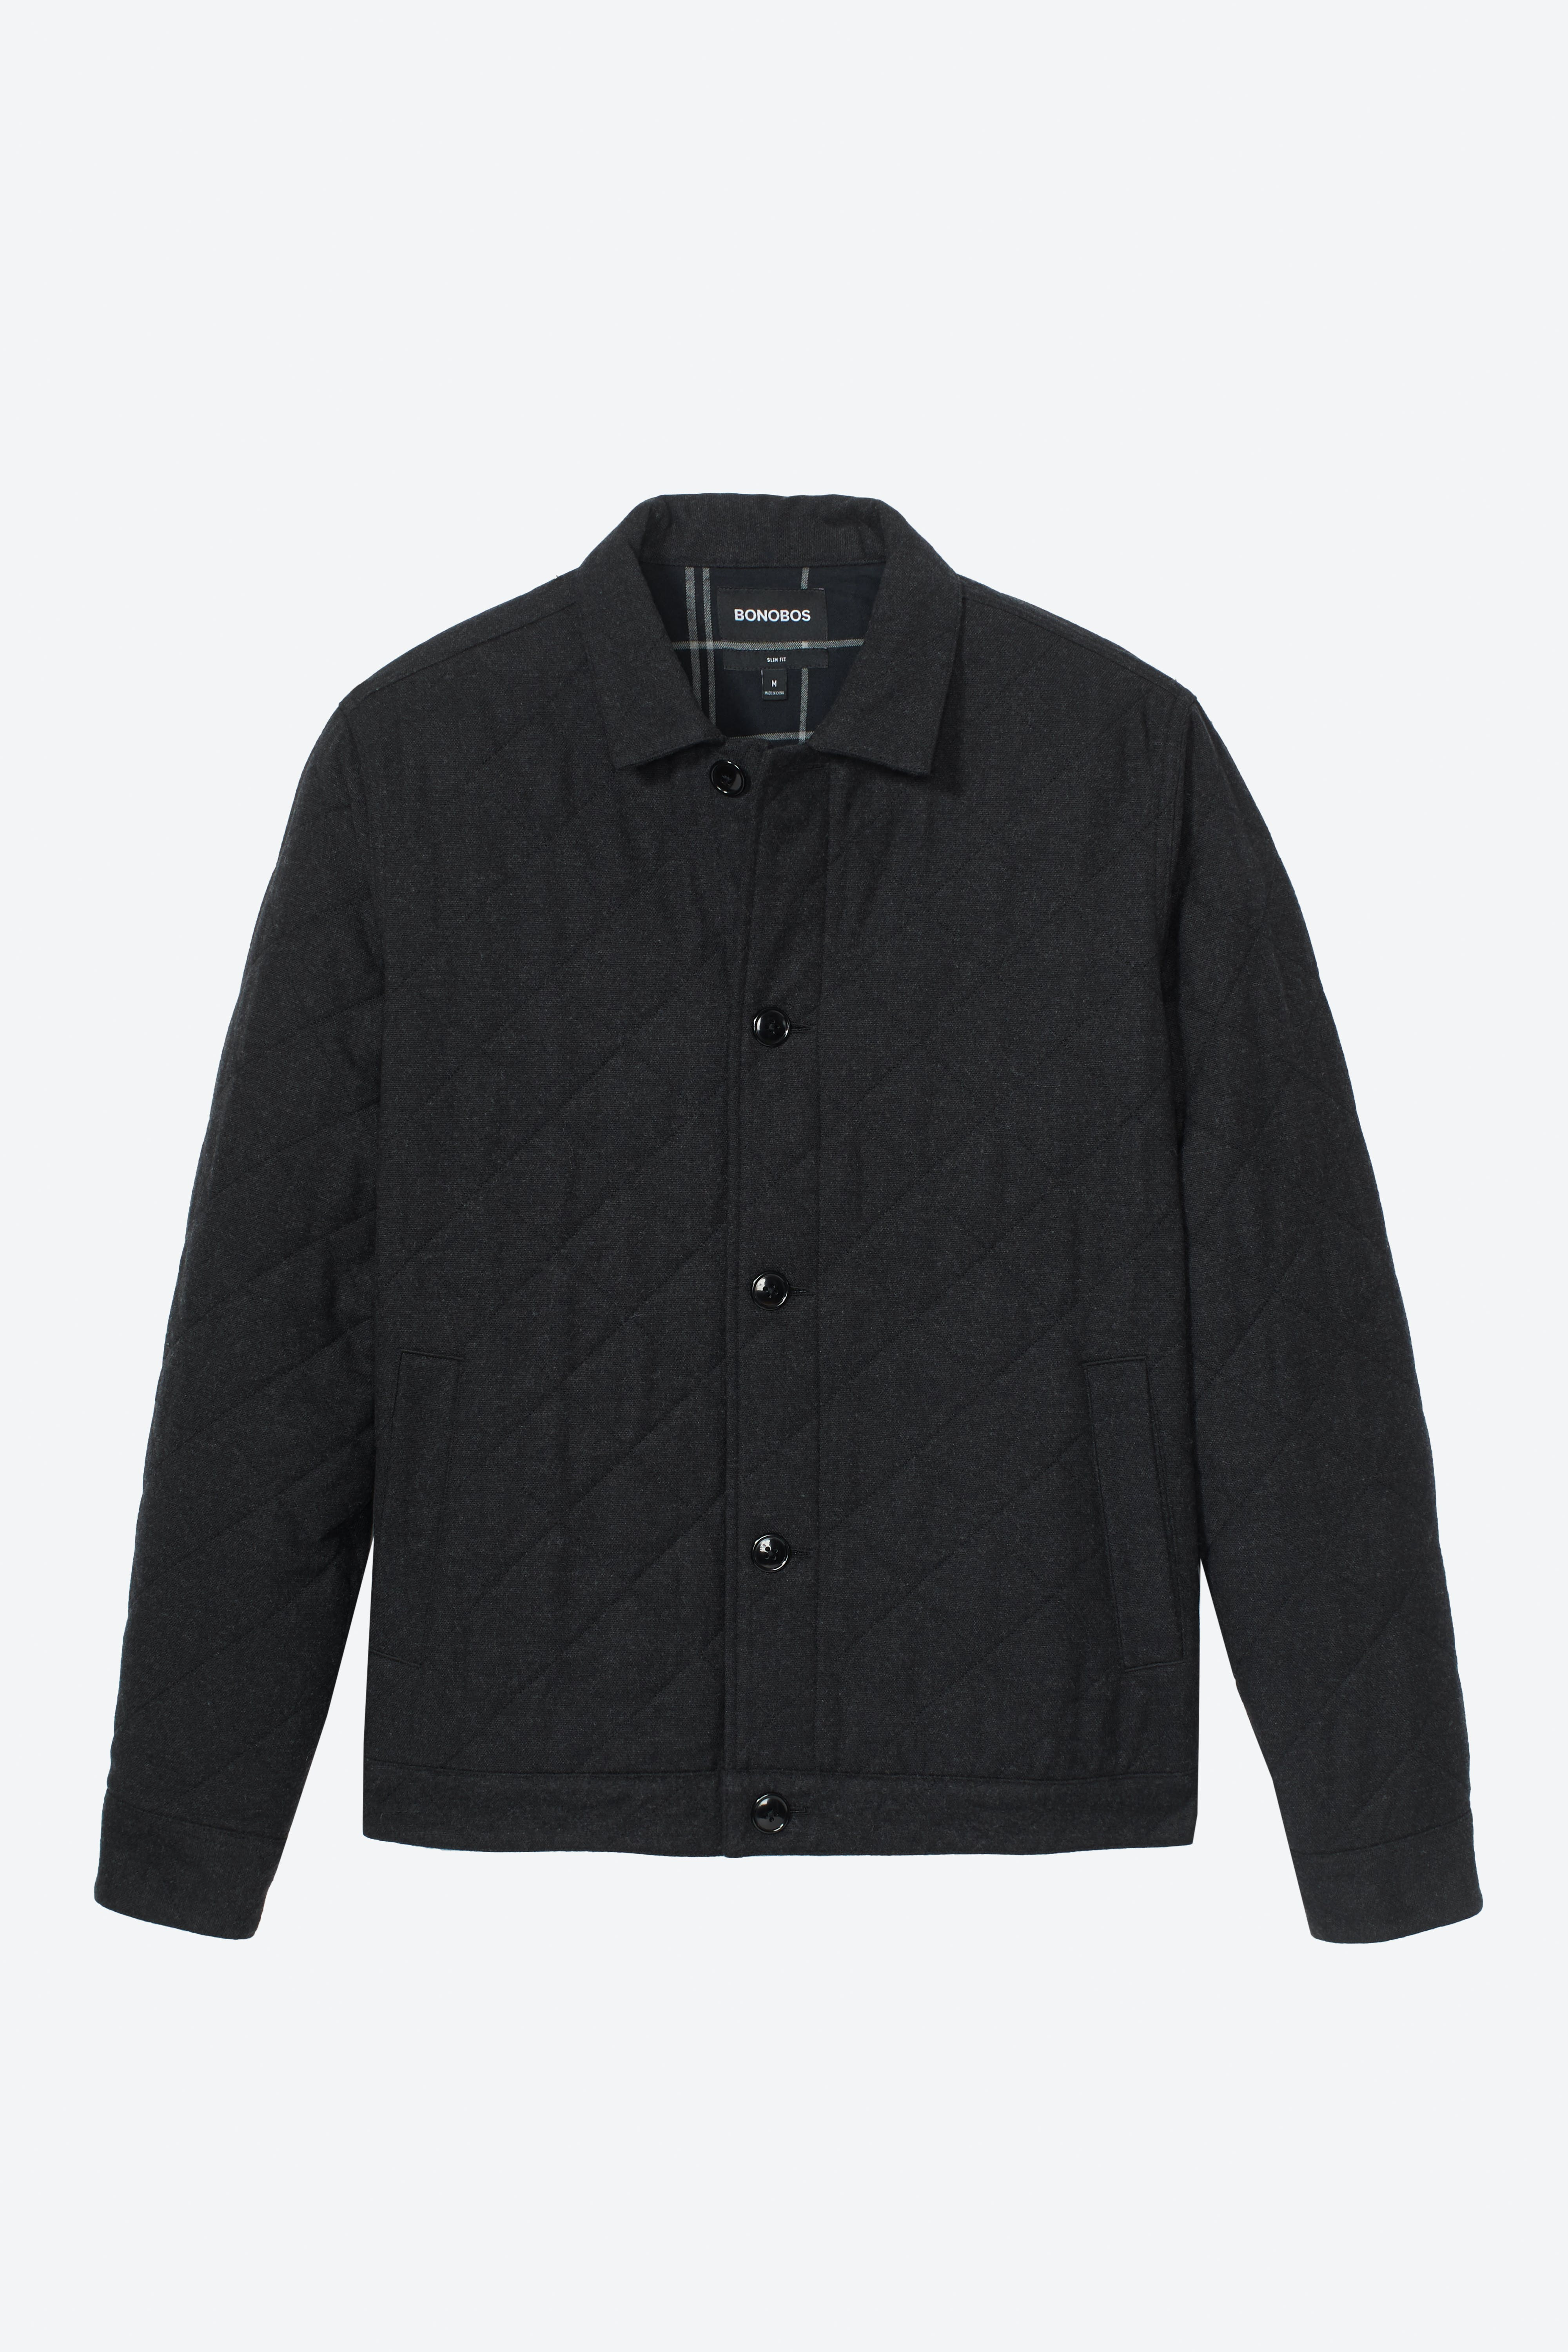 The Quilted Shirt Jacket